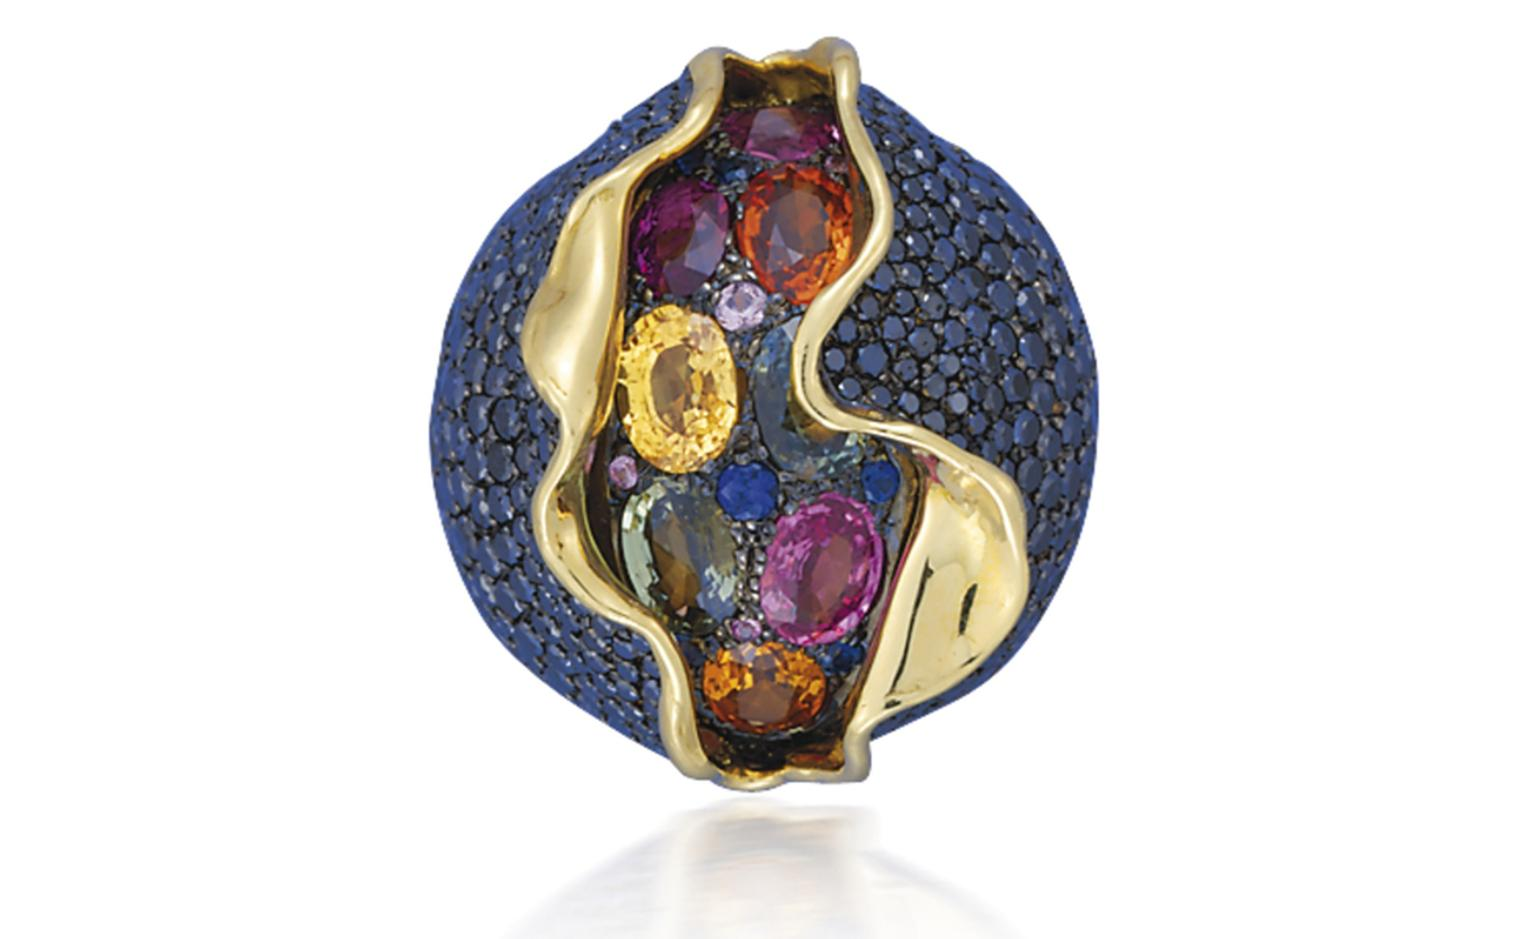 Lot 93 (3). An unusual suite of coloured diamond and coloured sapphire 'Craquele' jewellery, by Andre Marcha. Comprising a hinged bangle, ear clips and a ring. Estimate 50,000 - 60,000 U.S. dollars.